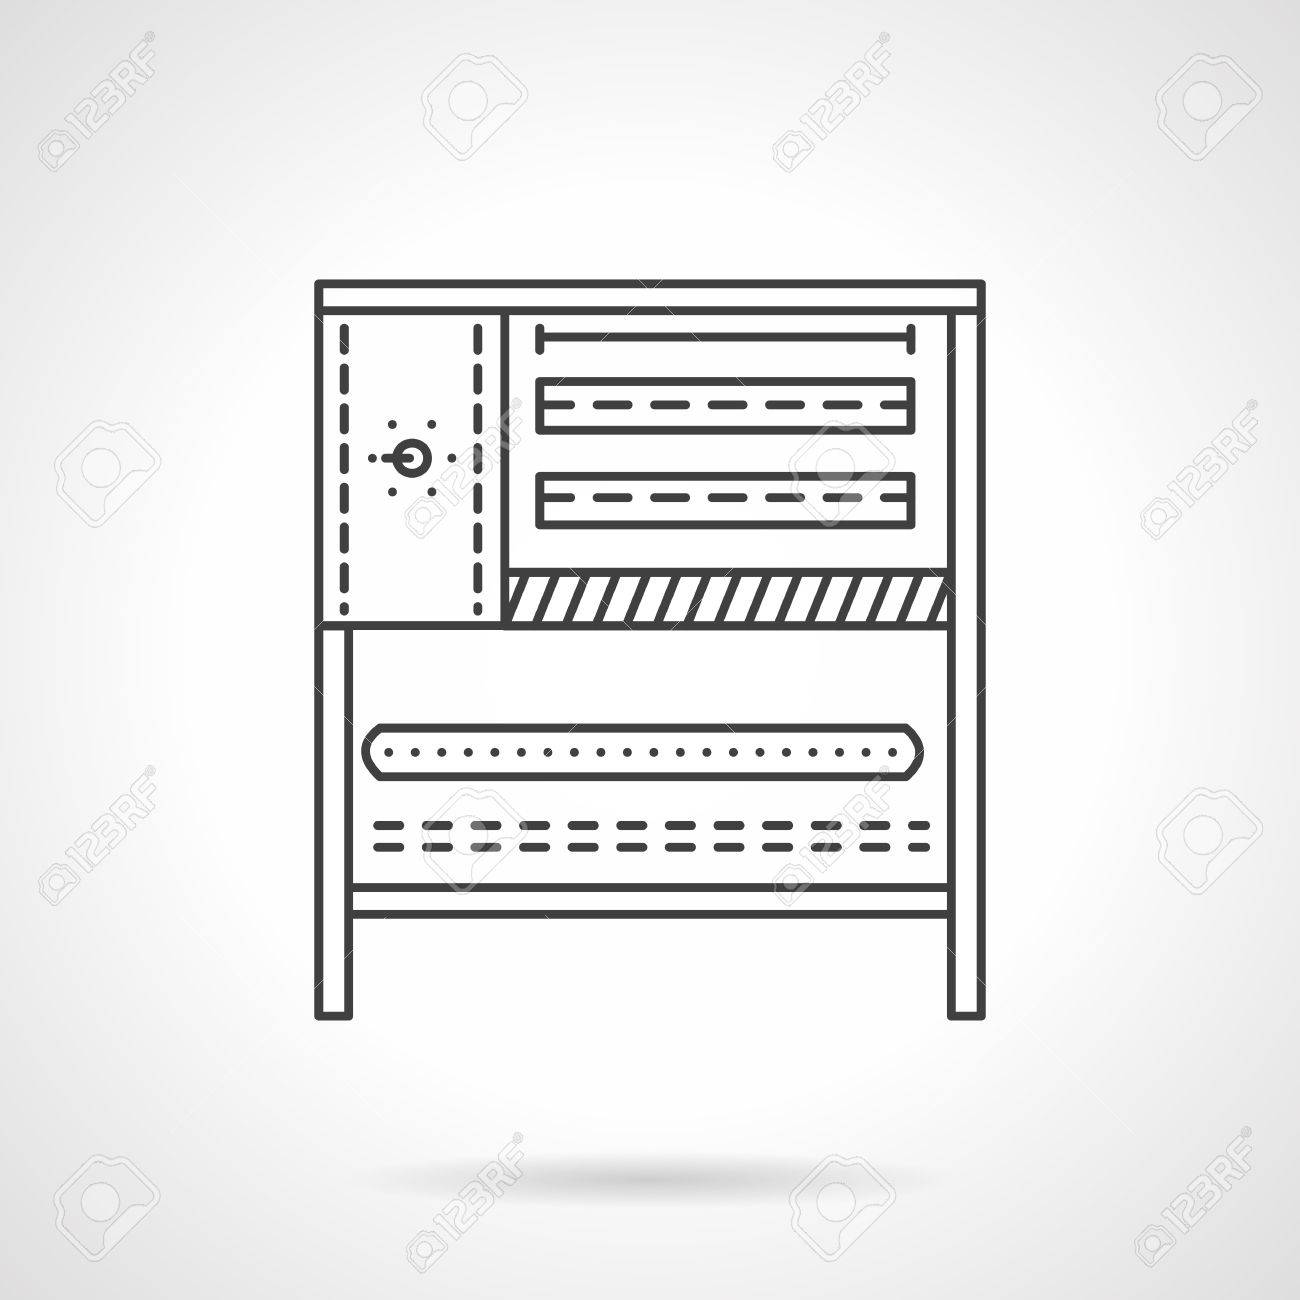 Commercial Kitchen Design App Free Bakery Equipment Oven And Stove Commercial Kitchen Vector